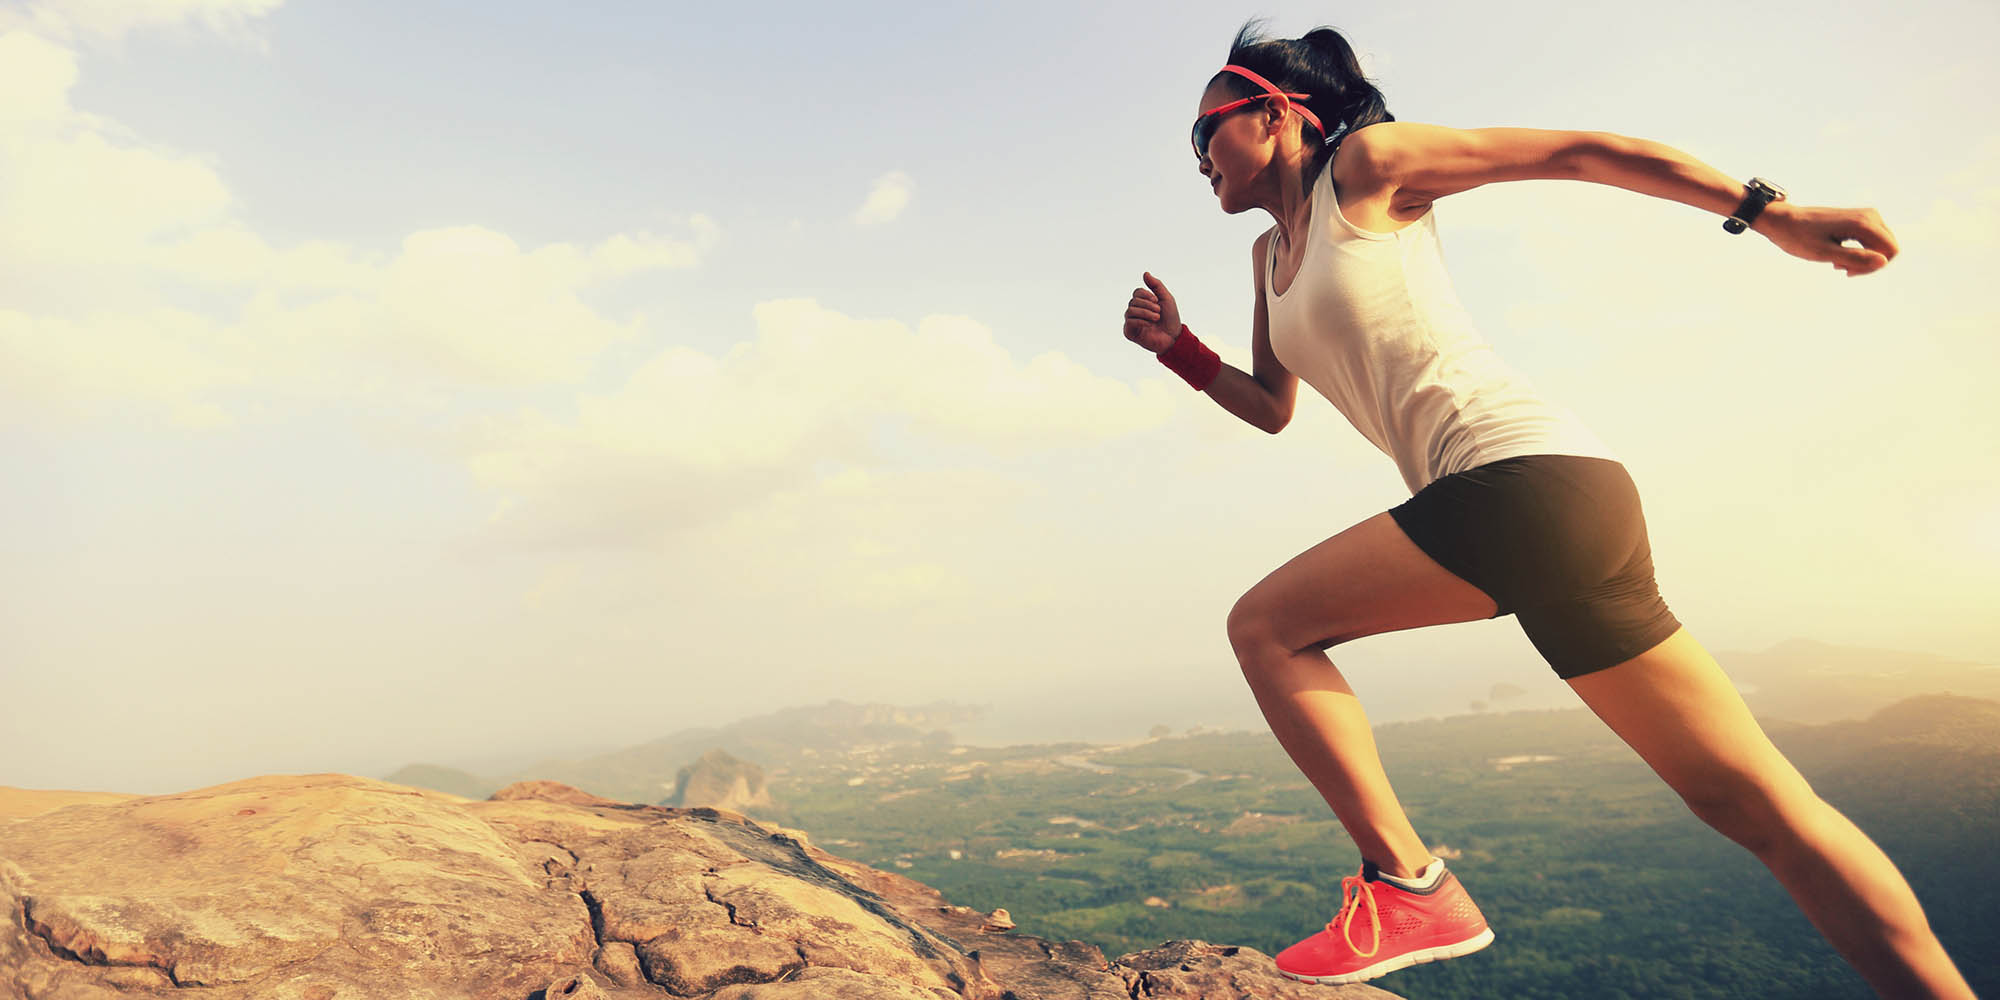 2 Things Successful People Do To Maximize Results